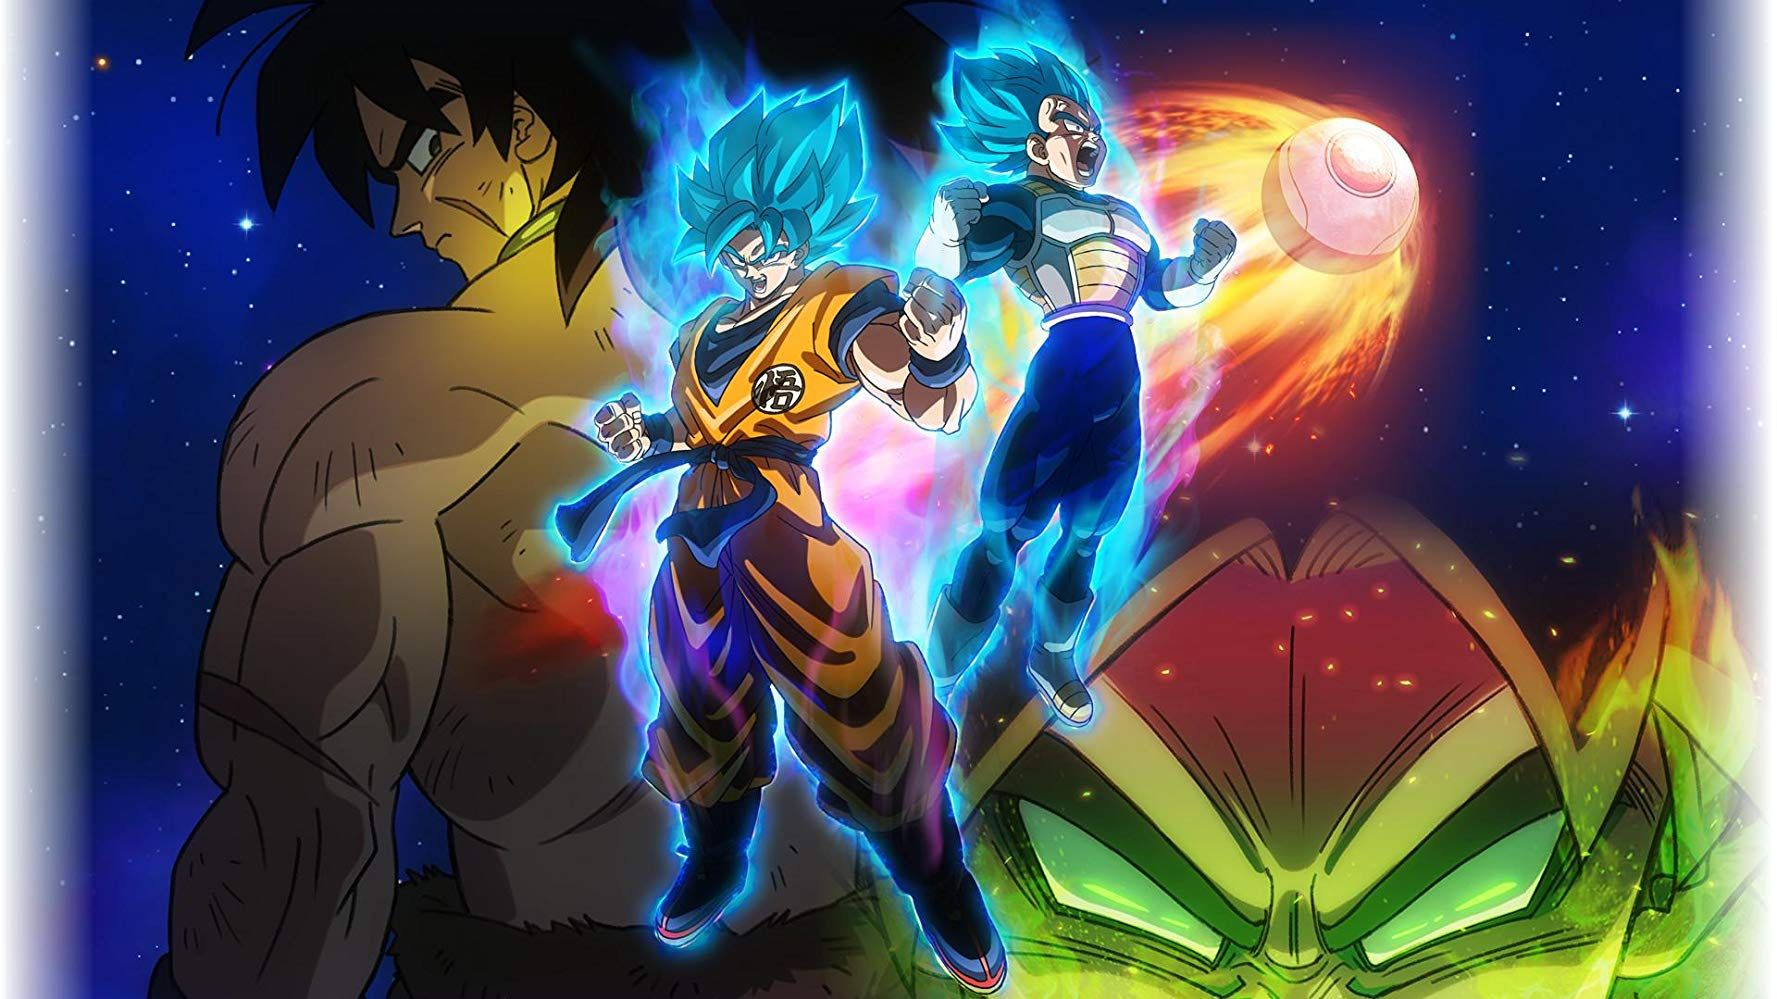 Dragon Ball Super Broly Full Movie Download Broly Movie Dragon Ball Super Super Movie